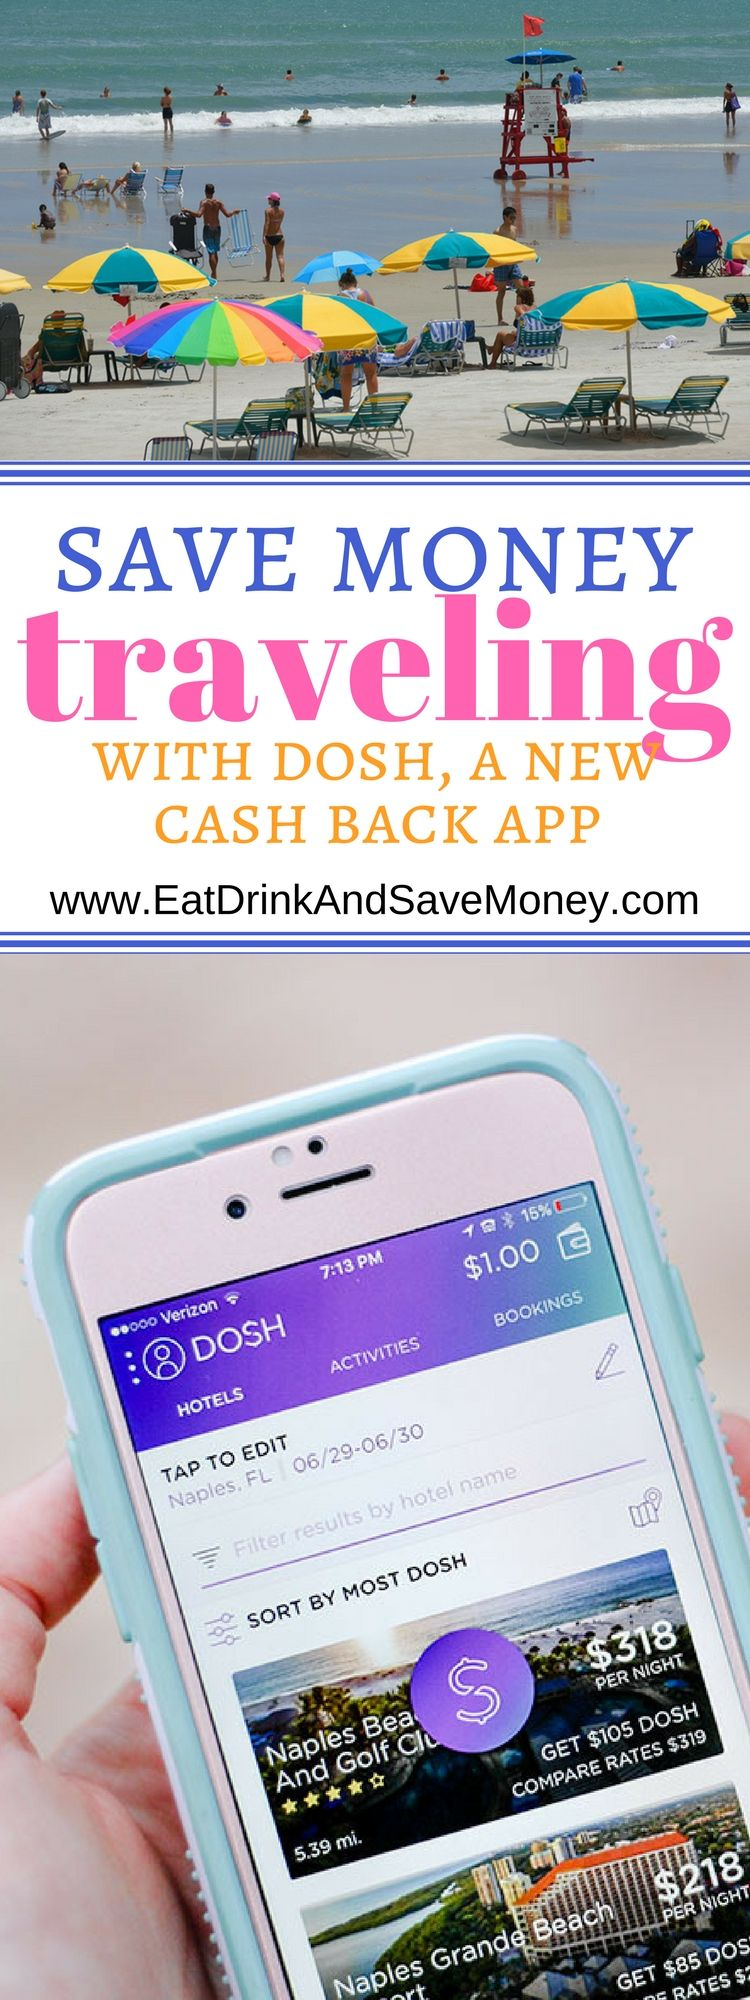 Dosh Review A New Cash Back App That Includes Travel